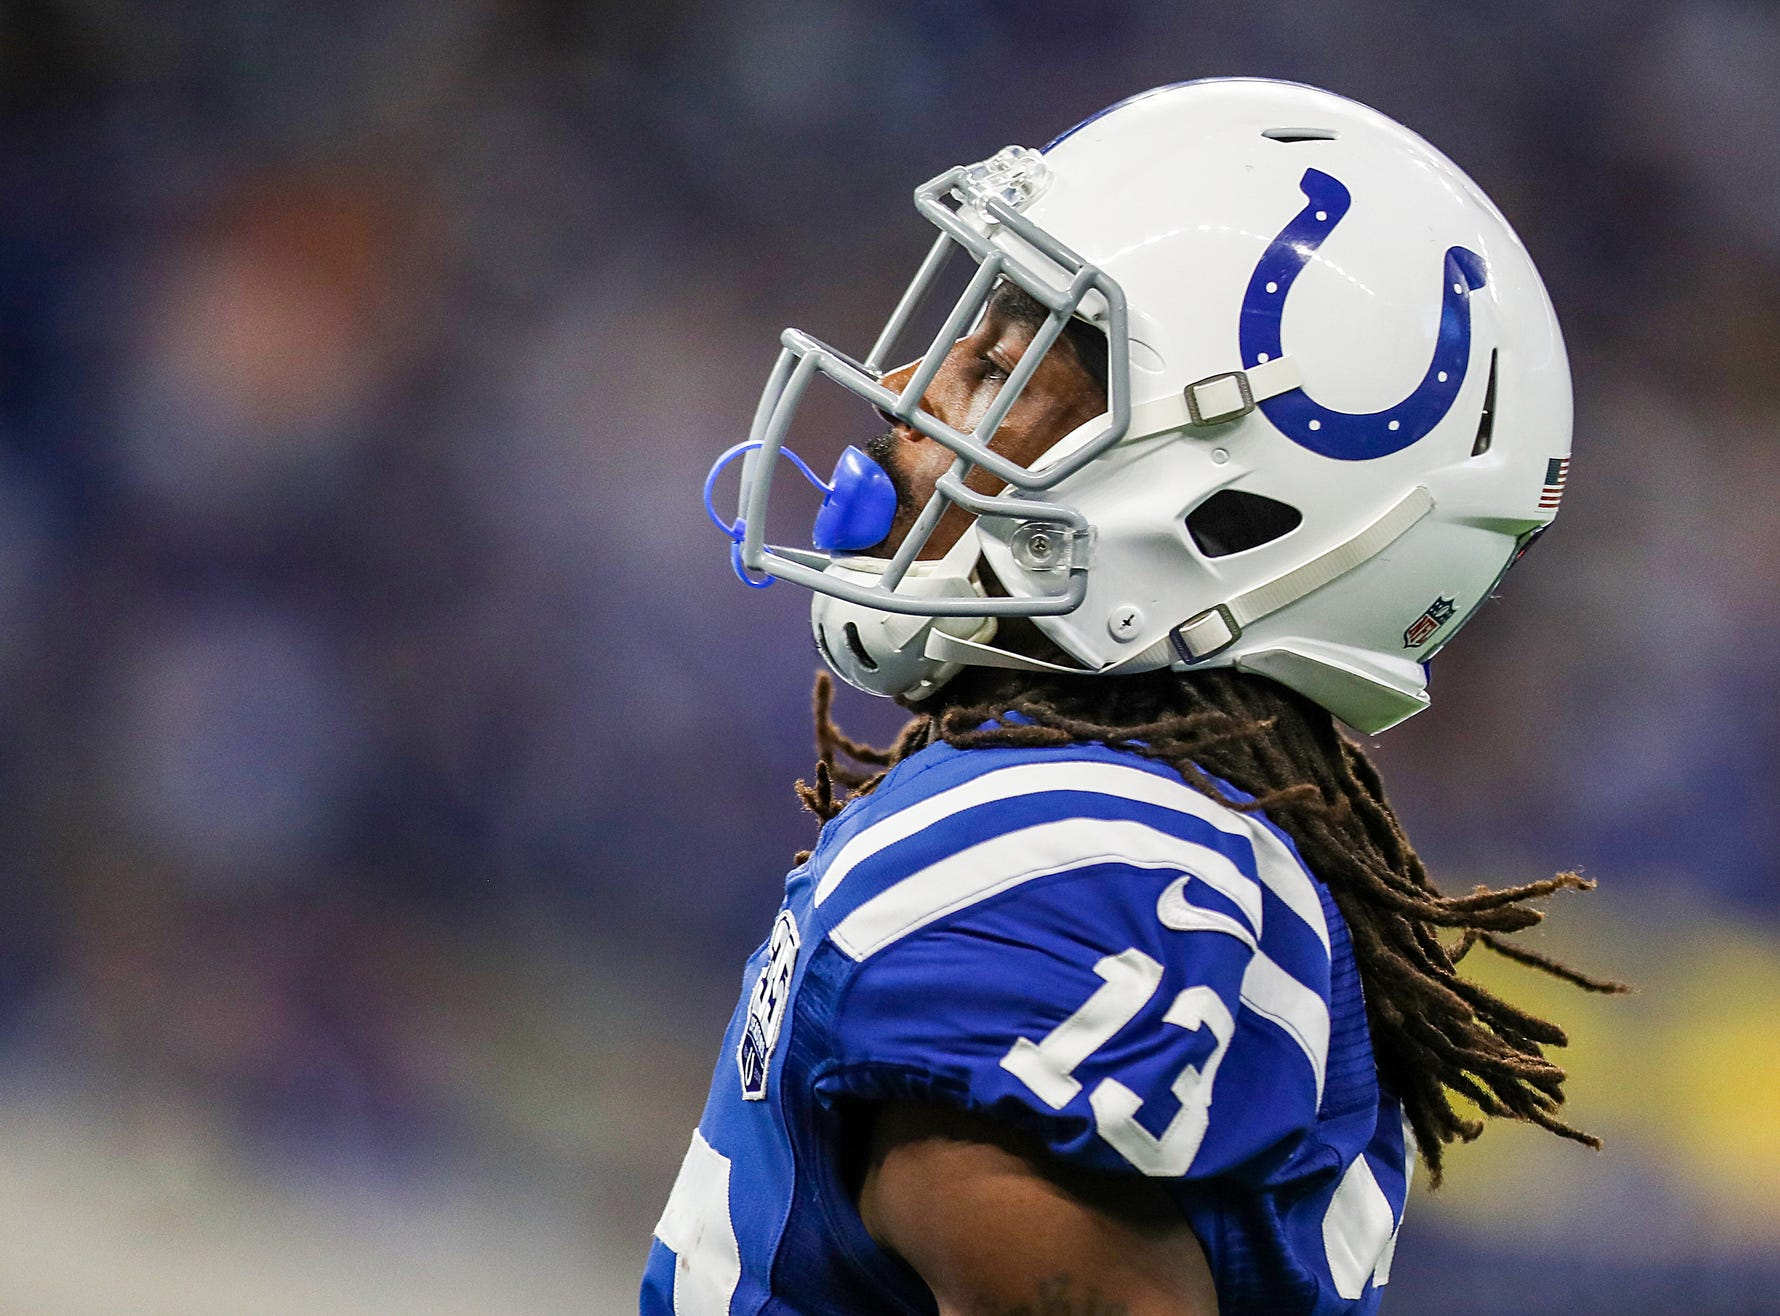 Indianapolis Colts wide receiver T.Y. Hilton (13) during the second half of the game at Lucas Oil Stadium in Indianapolis, Sunday, Dec. 16, 2018.